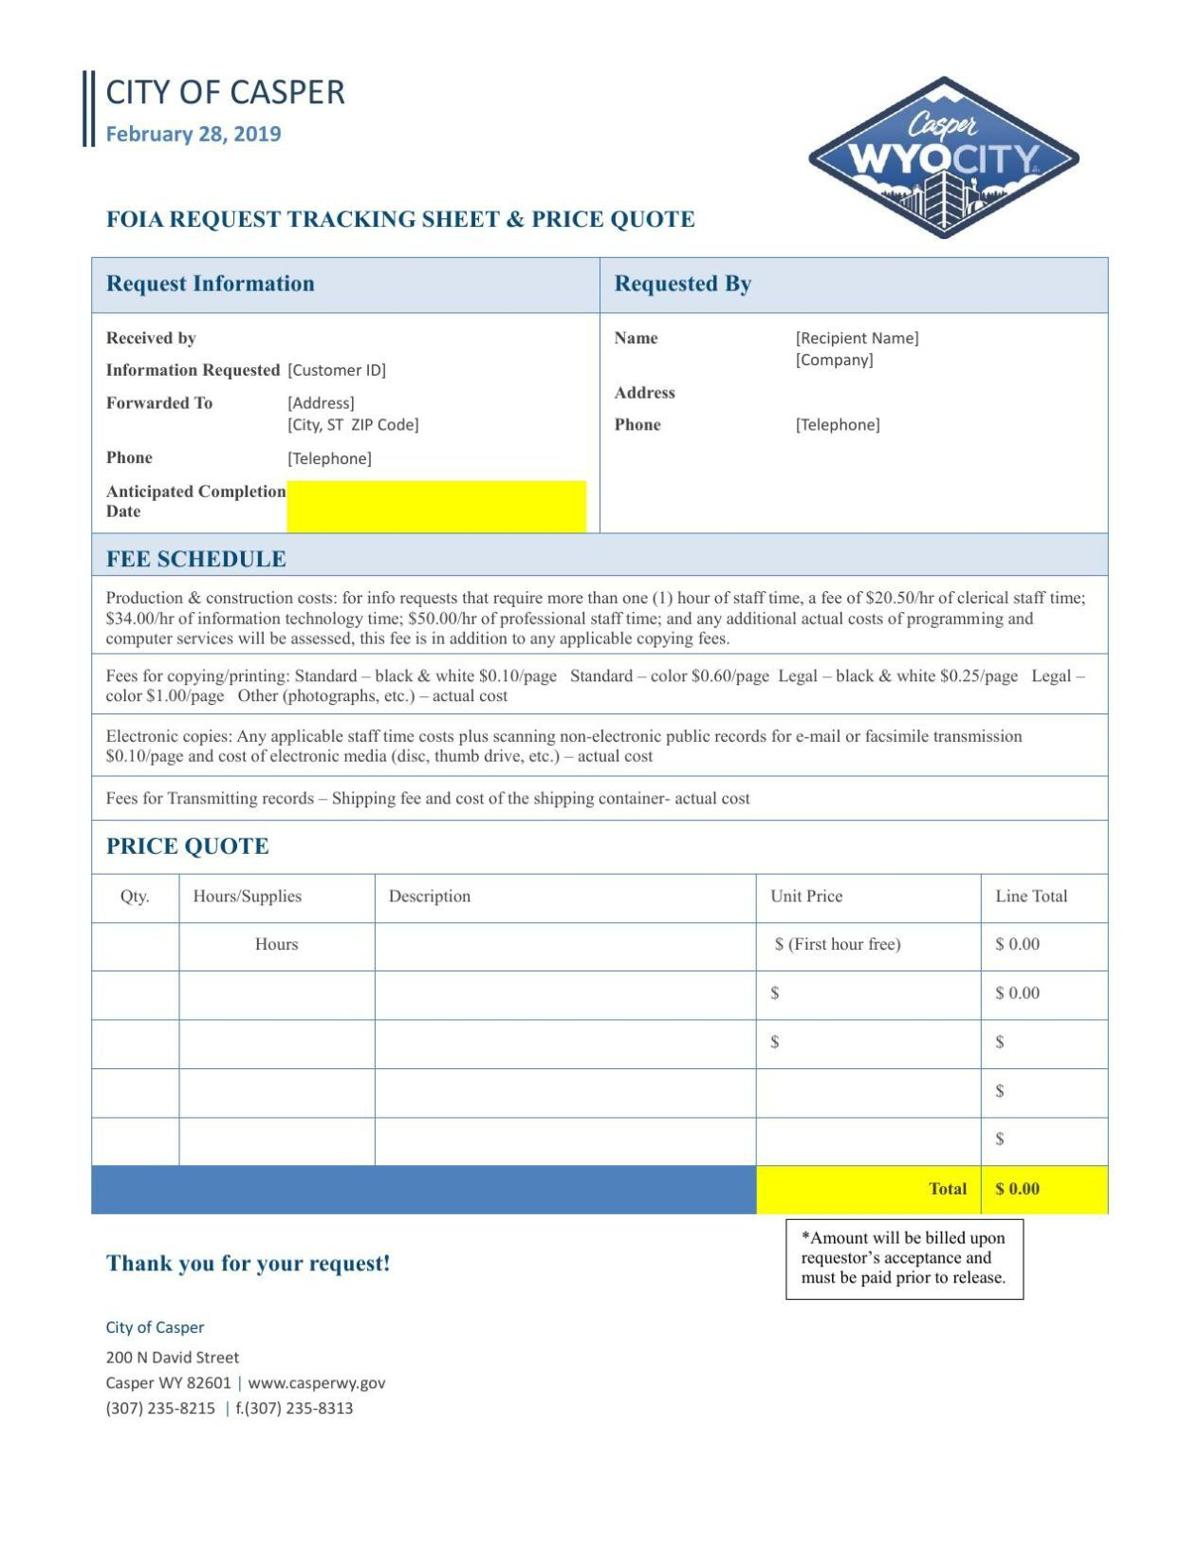 City of Casper records request tracking template and fee schedule